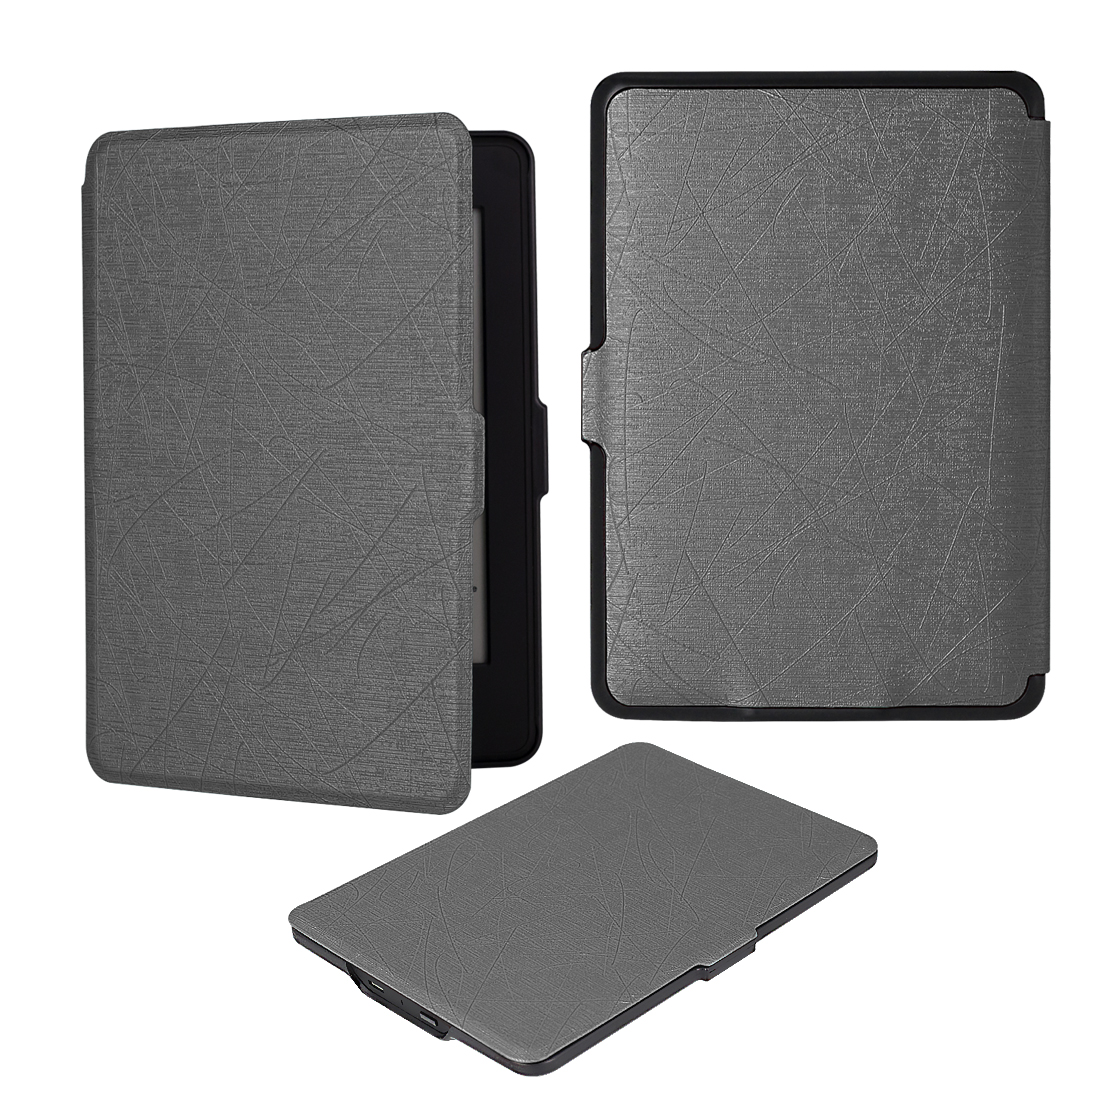 GOOJODOQ SmartShell Case for All-New Kindle Paperwhite 1 2 3 6 PU Leather Cover Auto Sleep/Wake Fits All Versions pu leather ebook case for kindle paperwhite paper white 1 2 3 2015 ultra slim hard shell flip cover crazy horse lines wake sleep